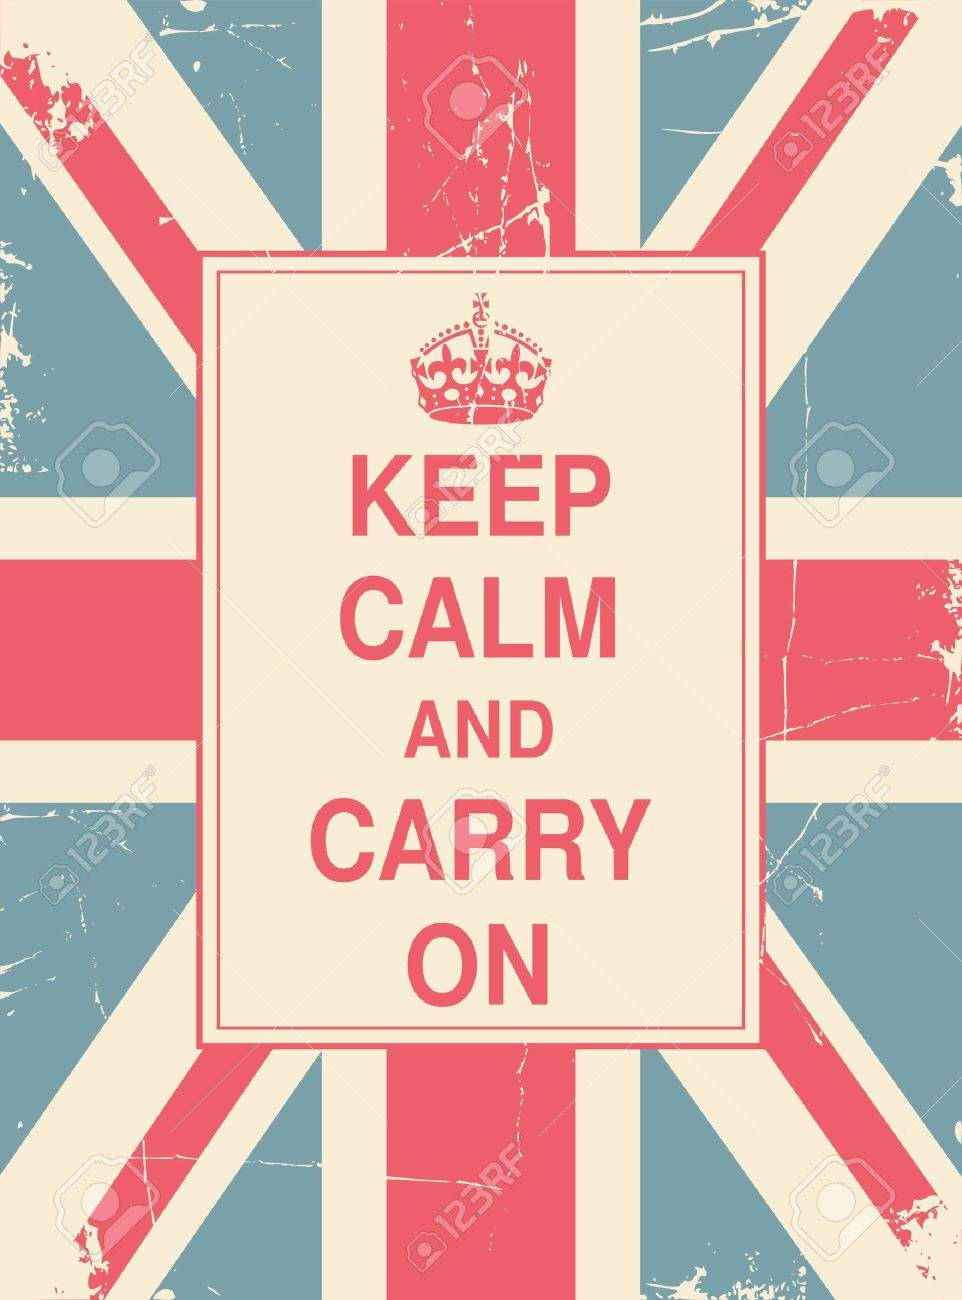 Keep Calm and Carry On against the British flag Stock Vector - 13987535